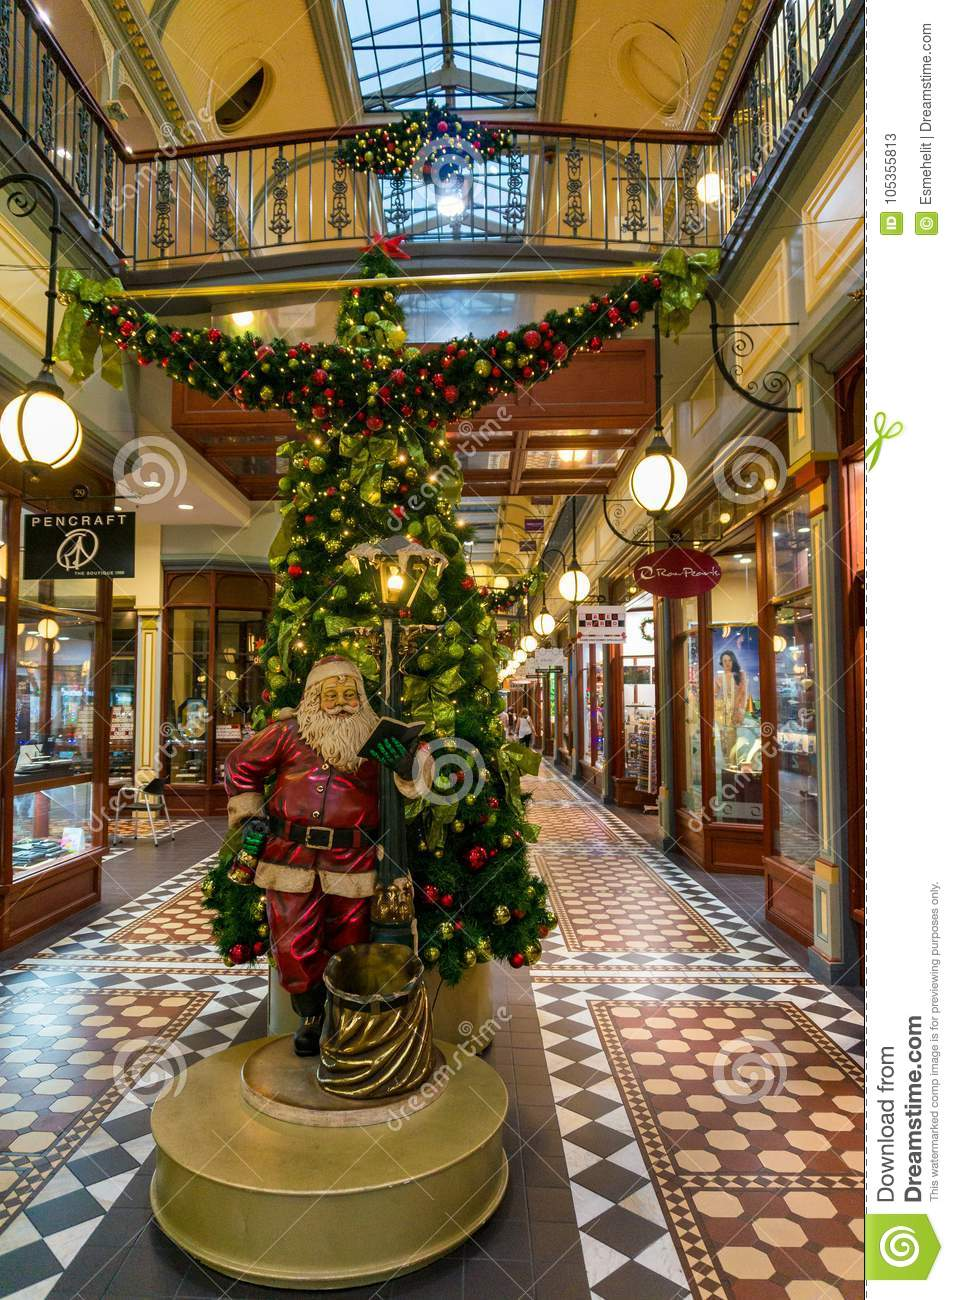 christmas decorations at adelaide arcade - Christmas Decorations Australia